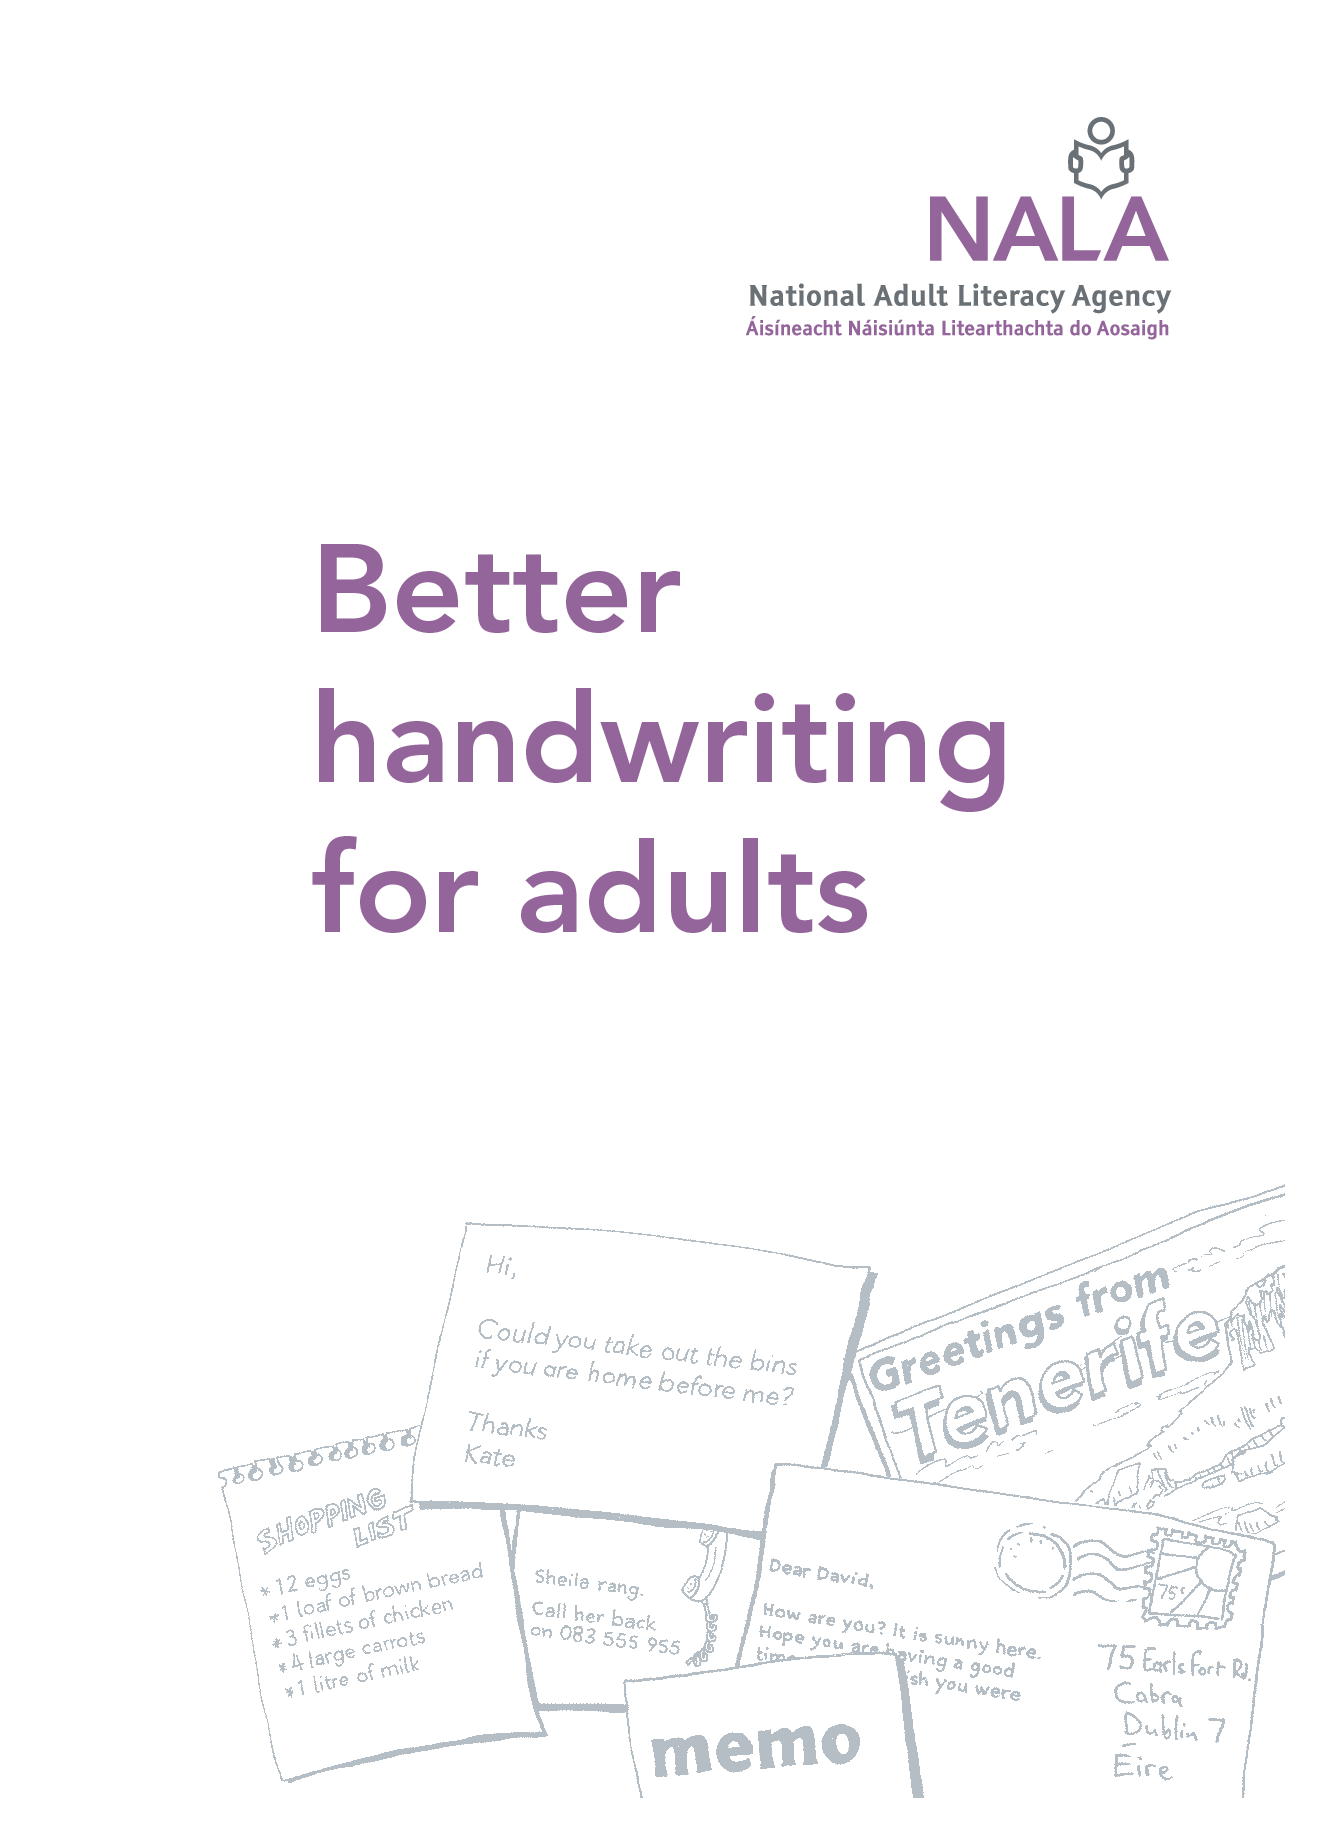 Handwriting Practice For Adults | Improve Handwriting intended for Alphabet Handwriting Worksheets For Adults